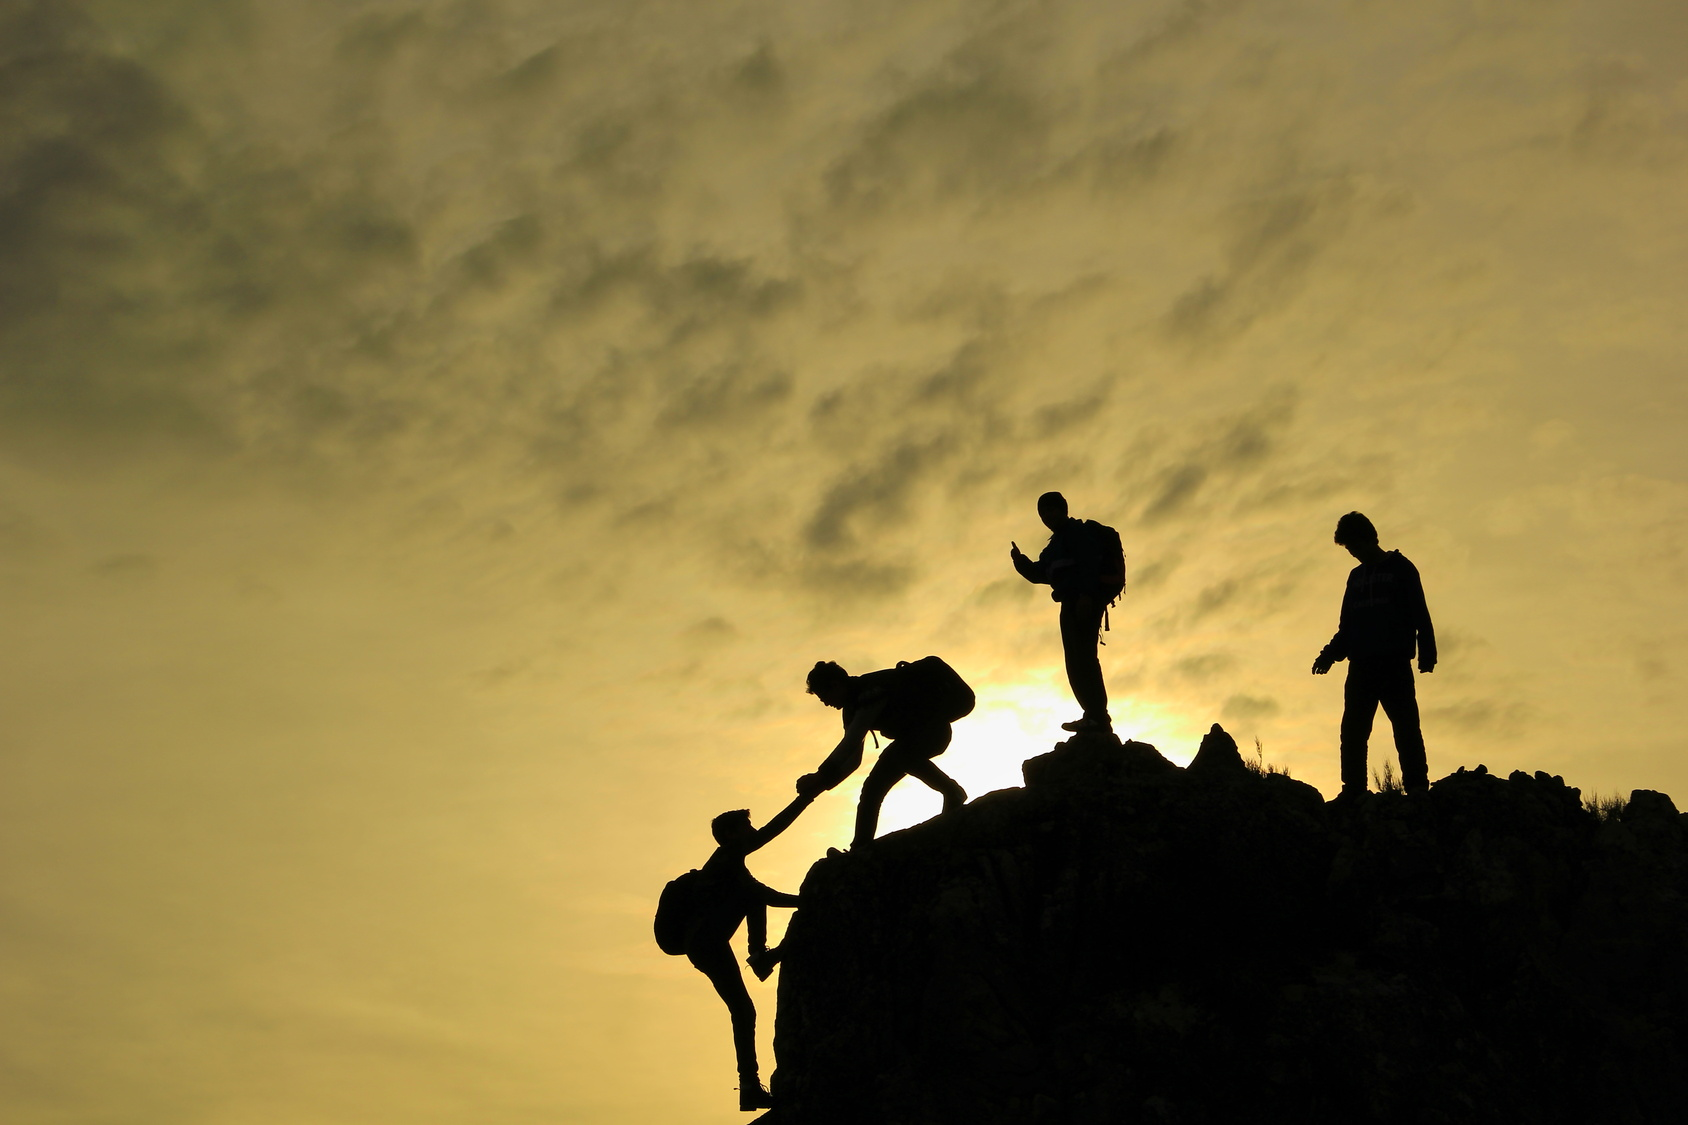 challenging_challenge_climb_cliff_group_help_together